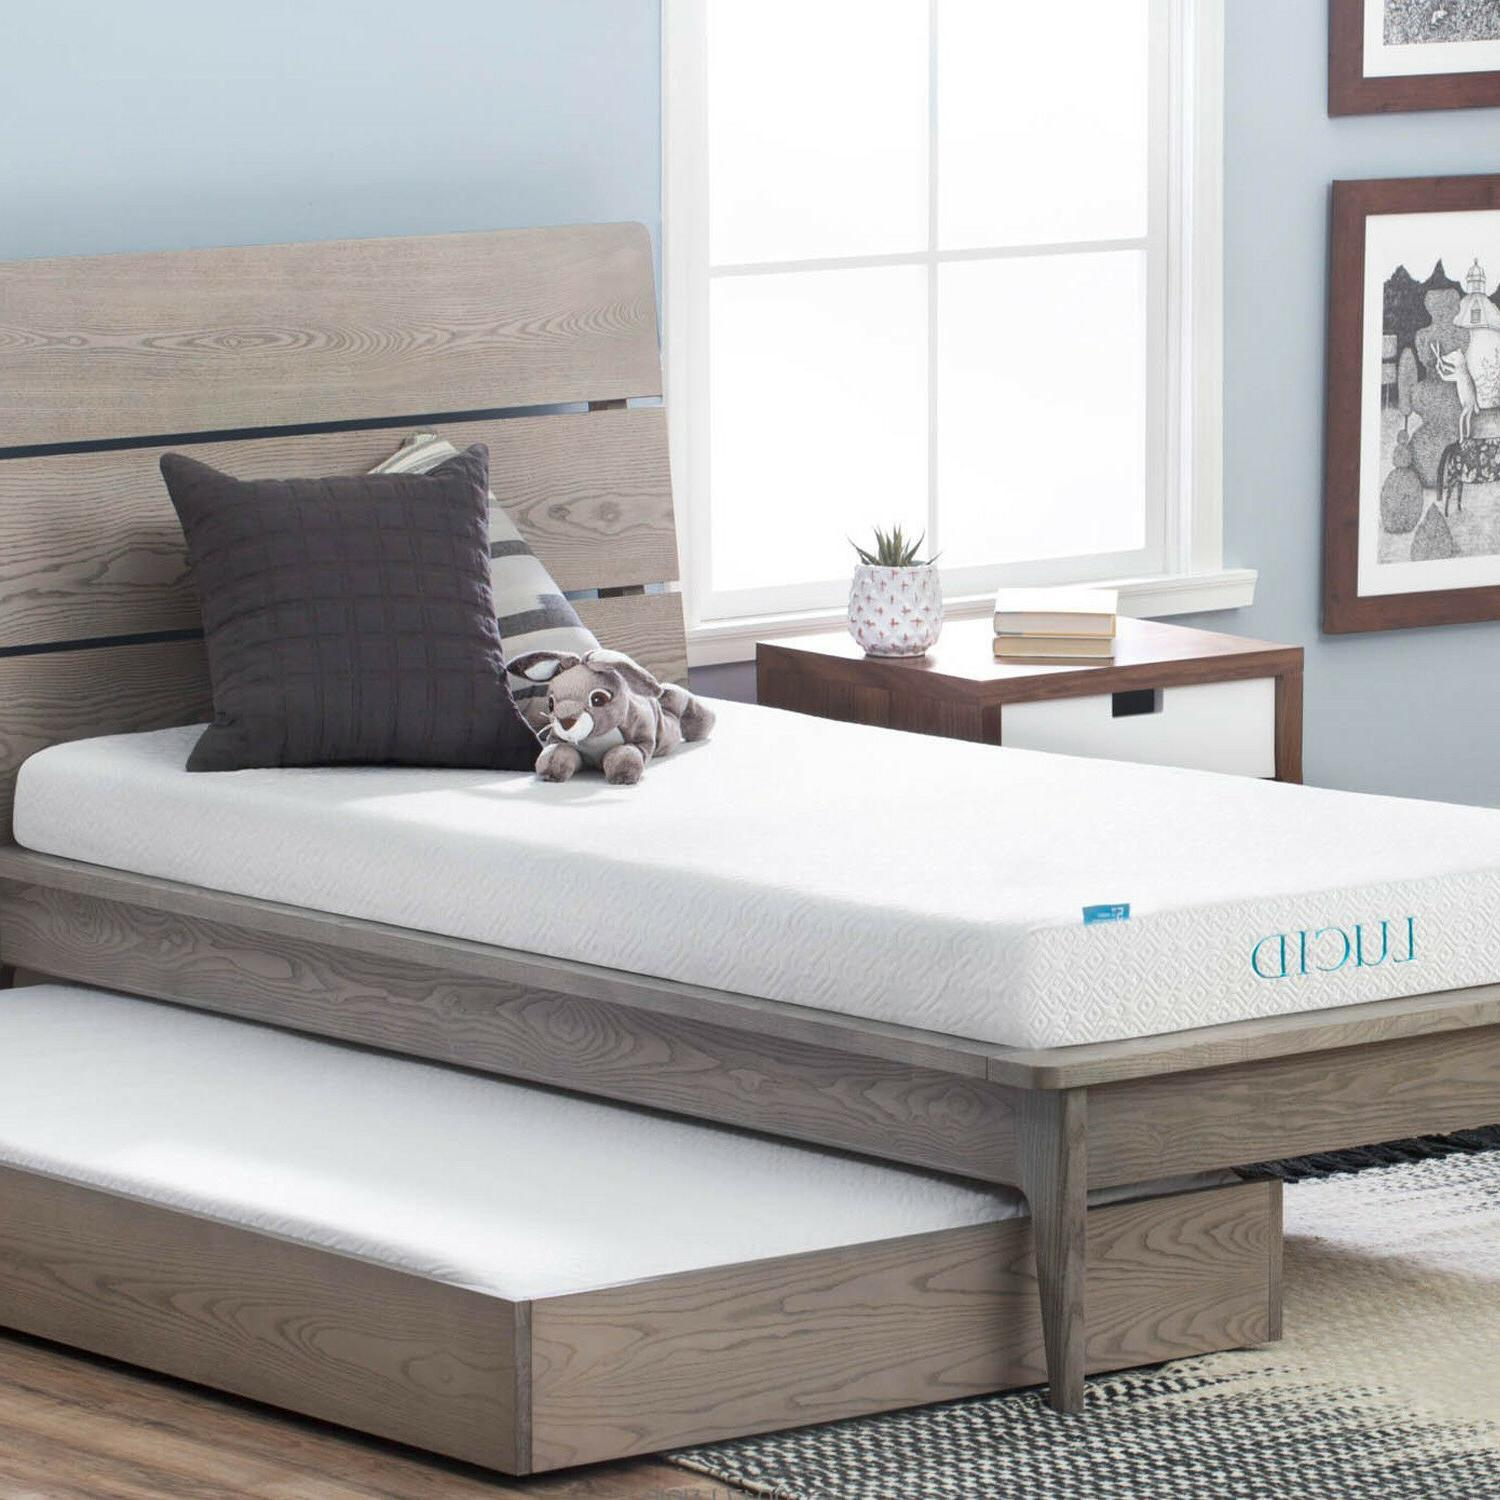 LUCID 5 inch Gel Memory Foam Mattress Layered CertiPUR Cool